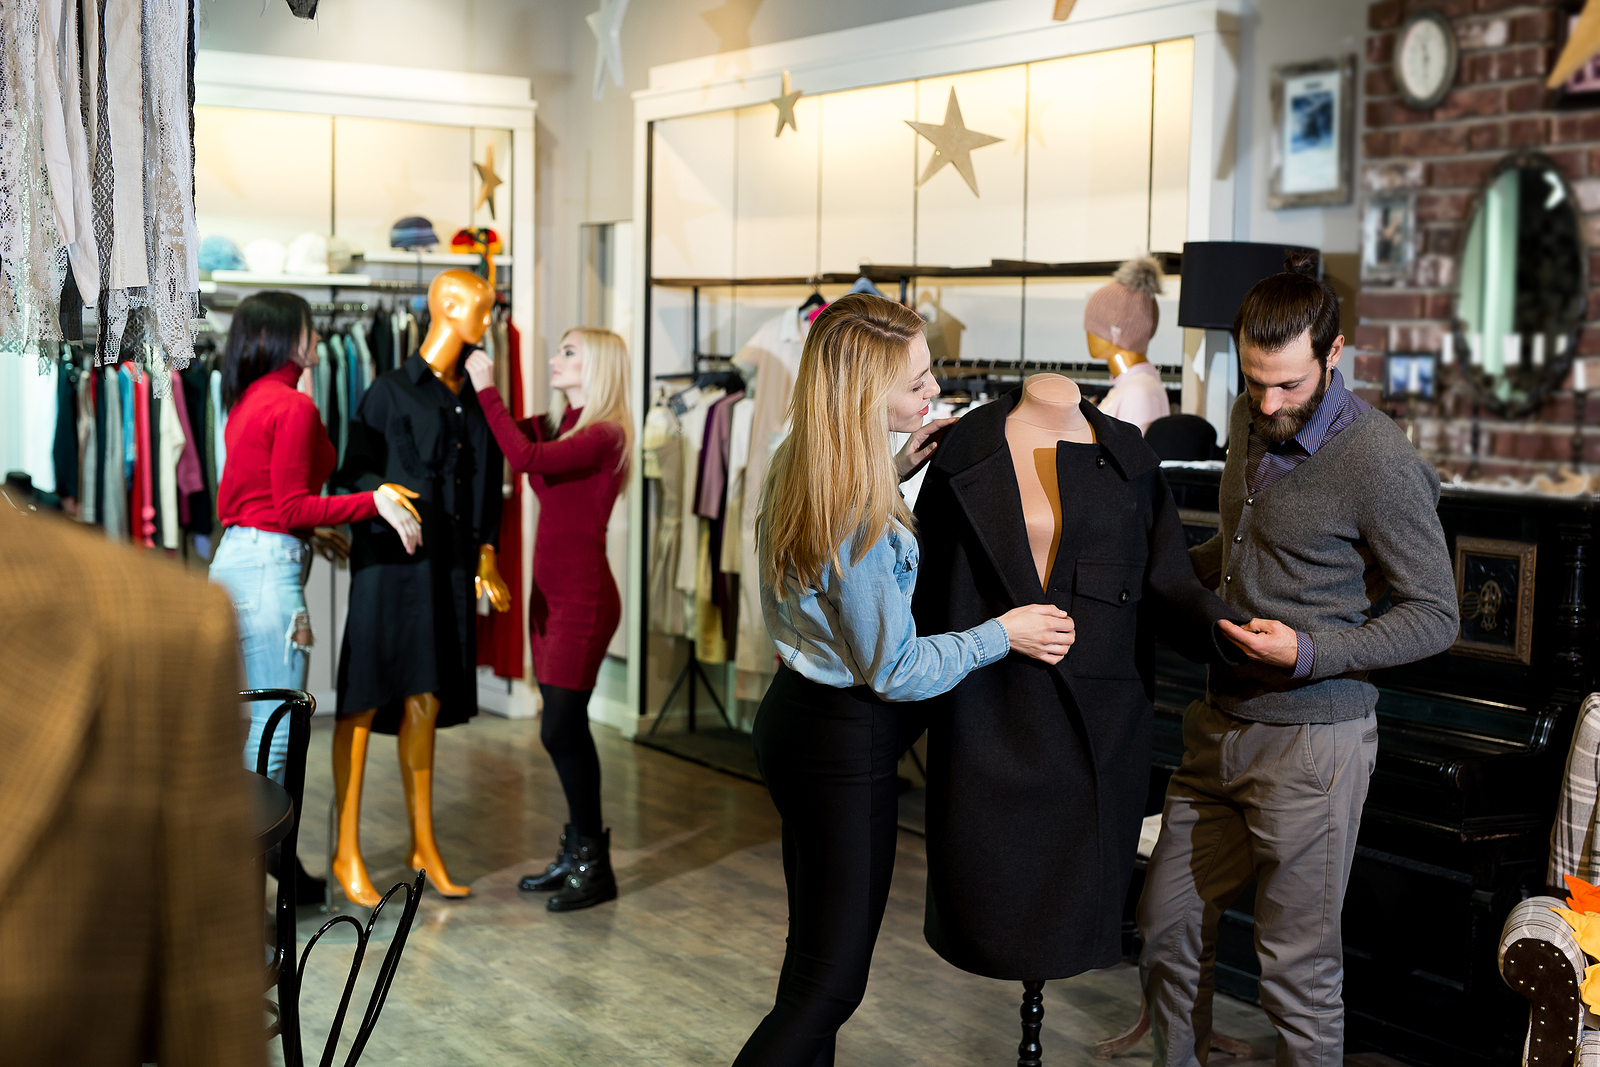 5 Definite Things Your New Business Needs